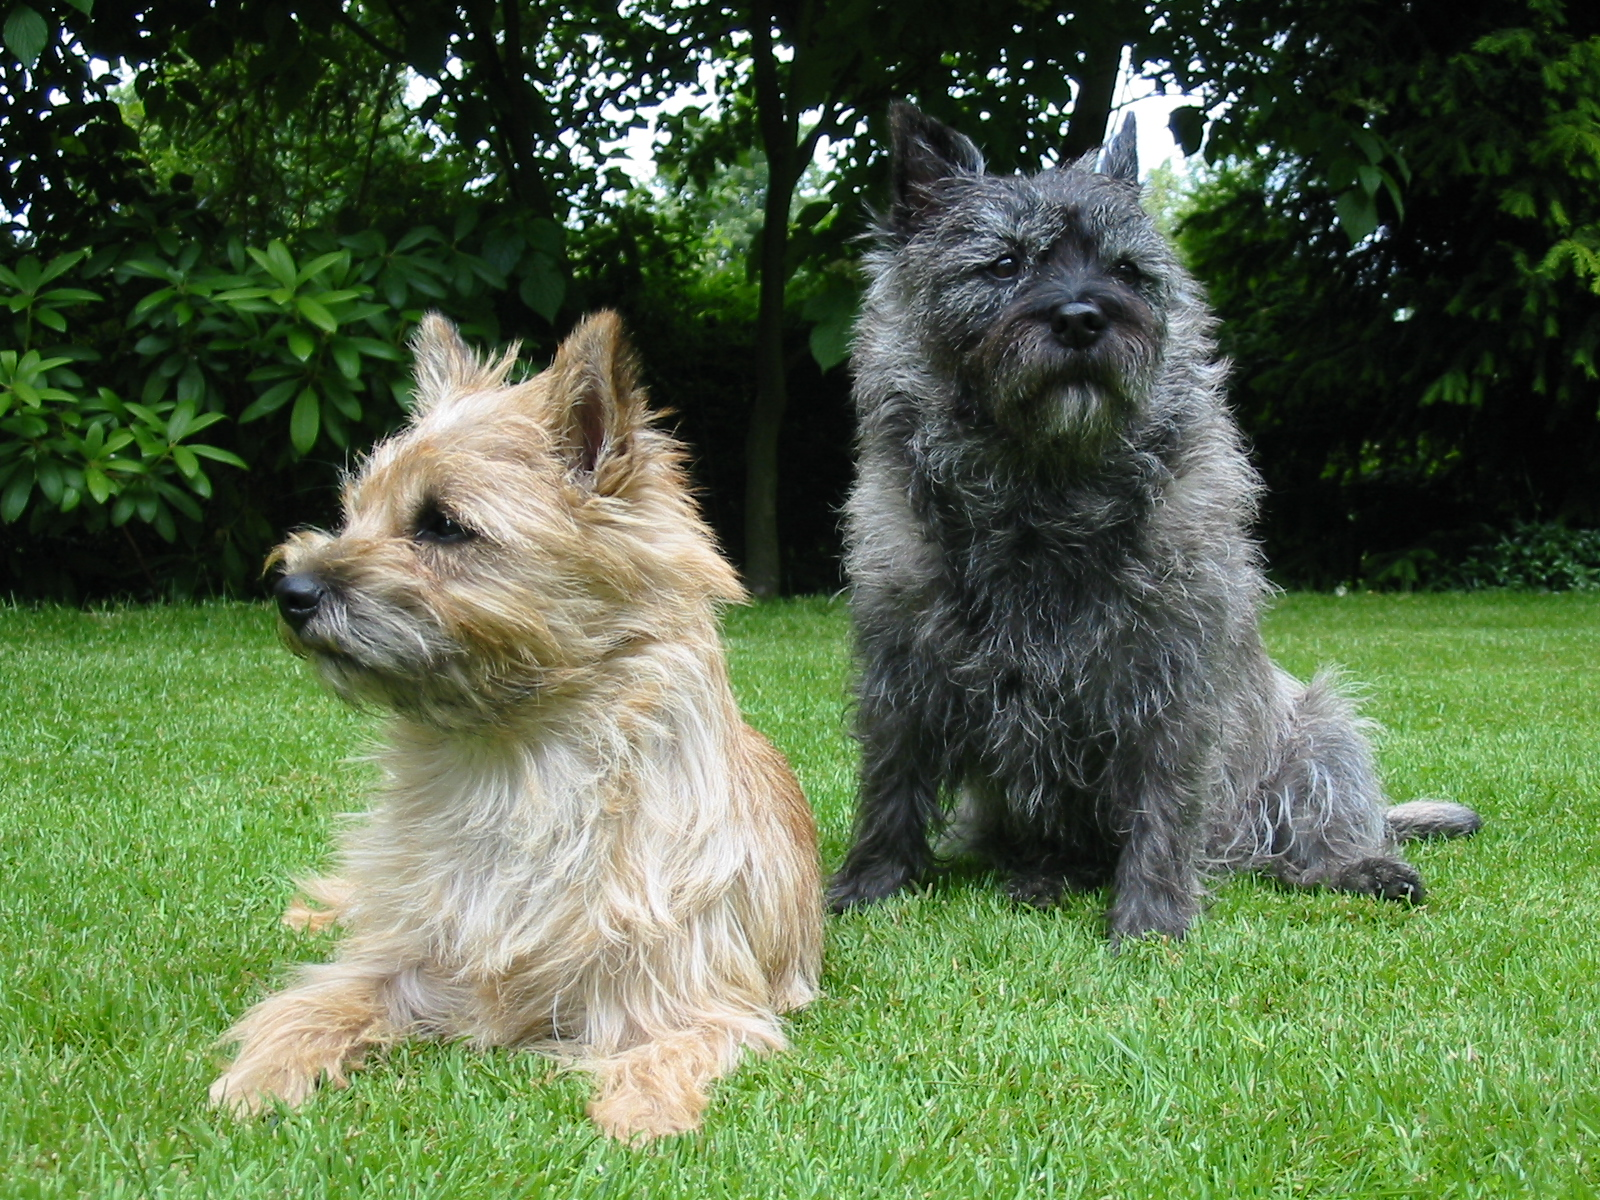 Two Cairn Terrier dogs wallpaper